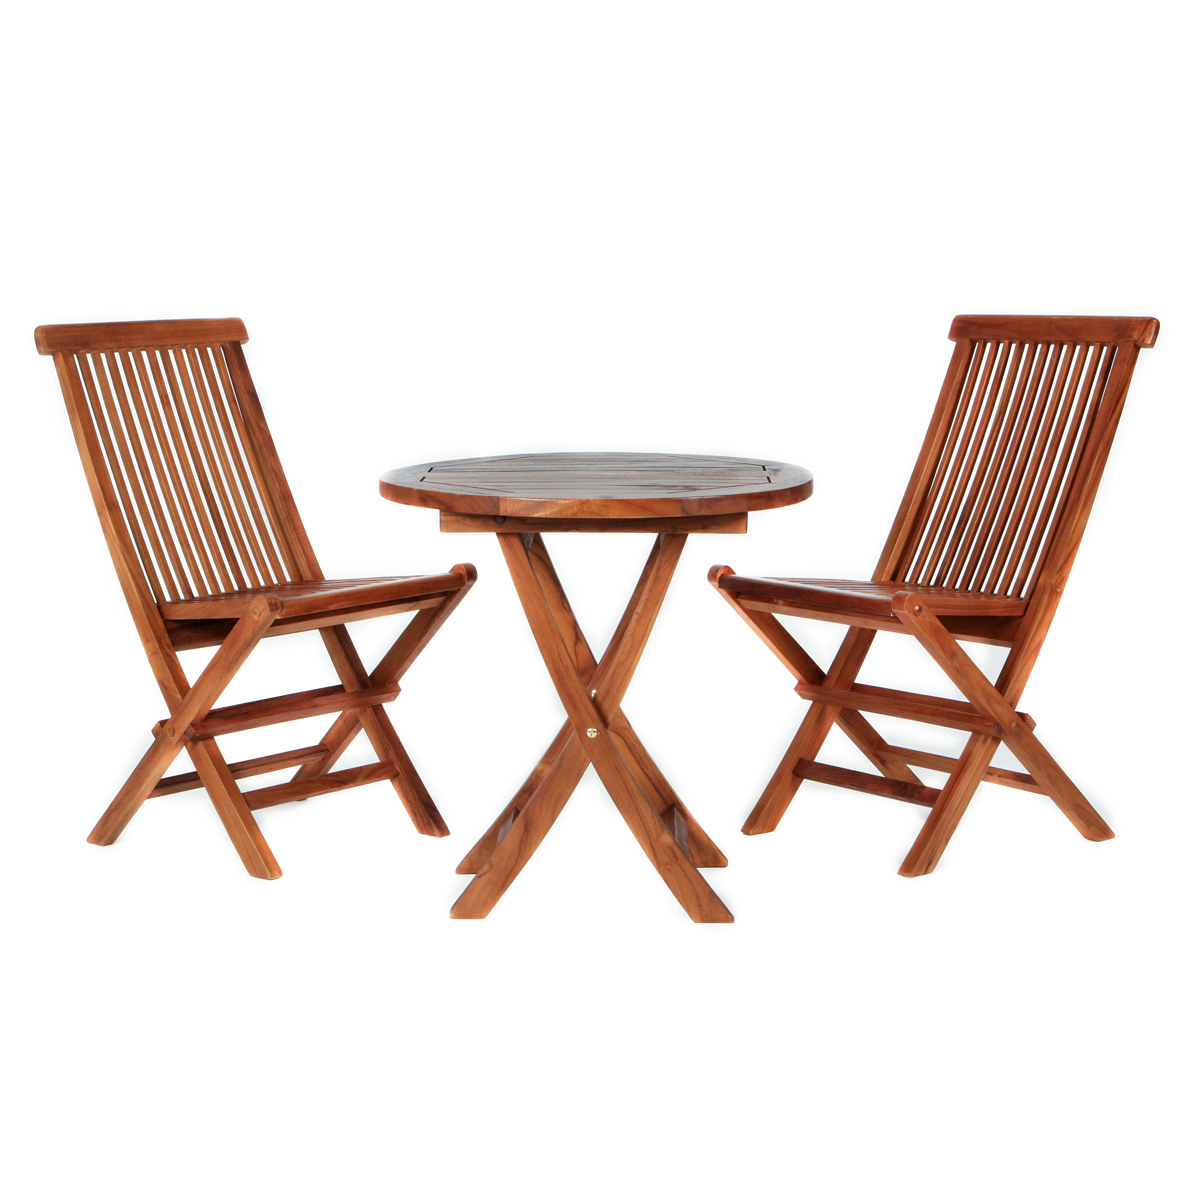 Picture of: All Things Cedar Folding Chair Teak Table Patio Outdoor Furniture